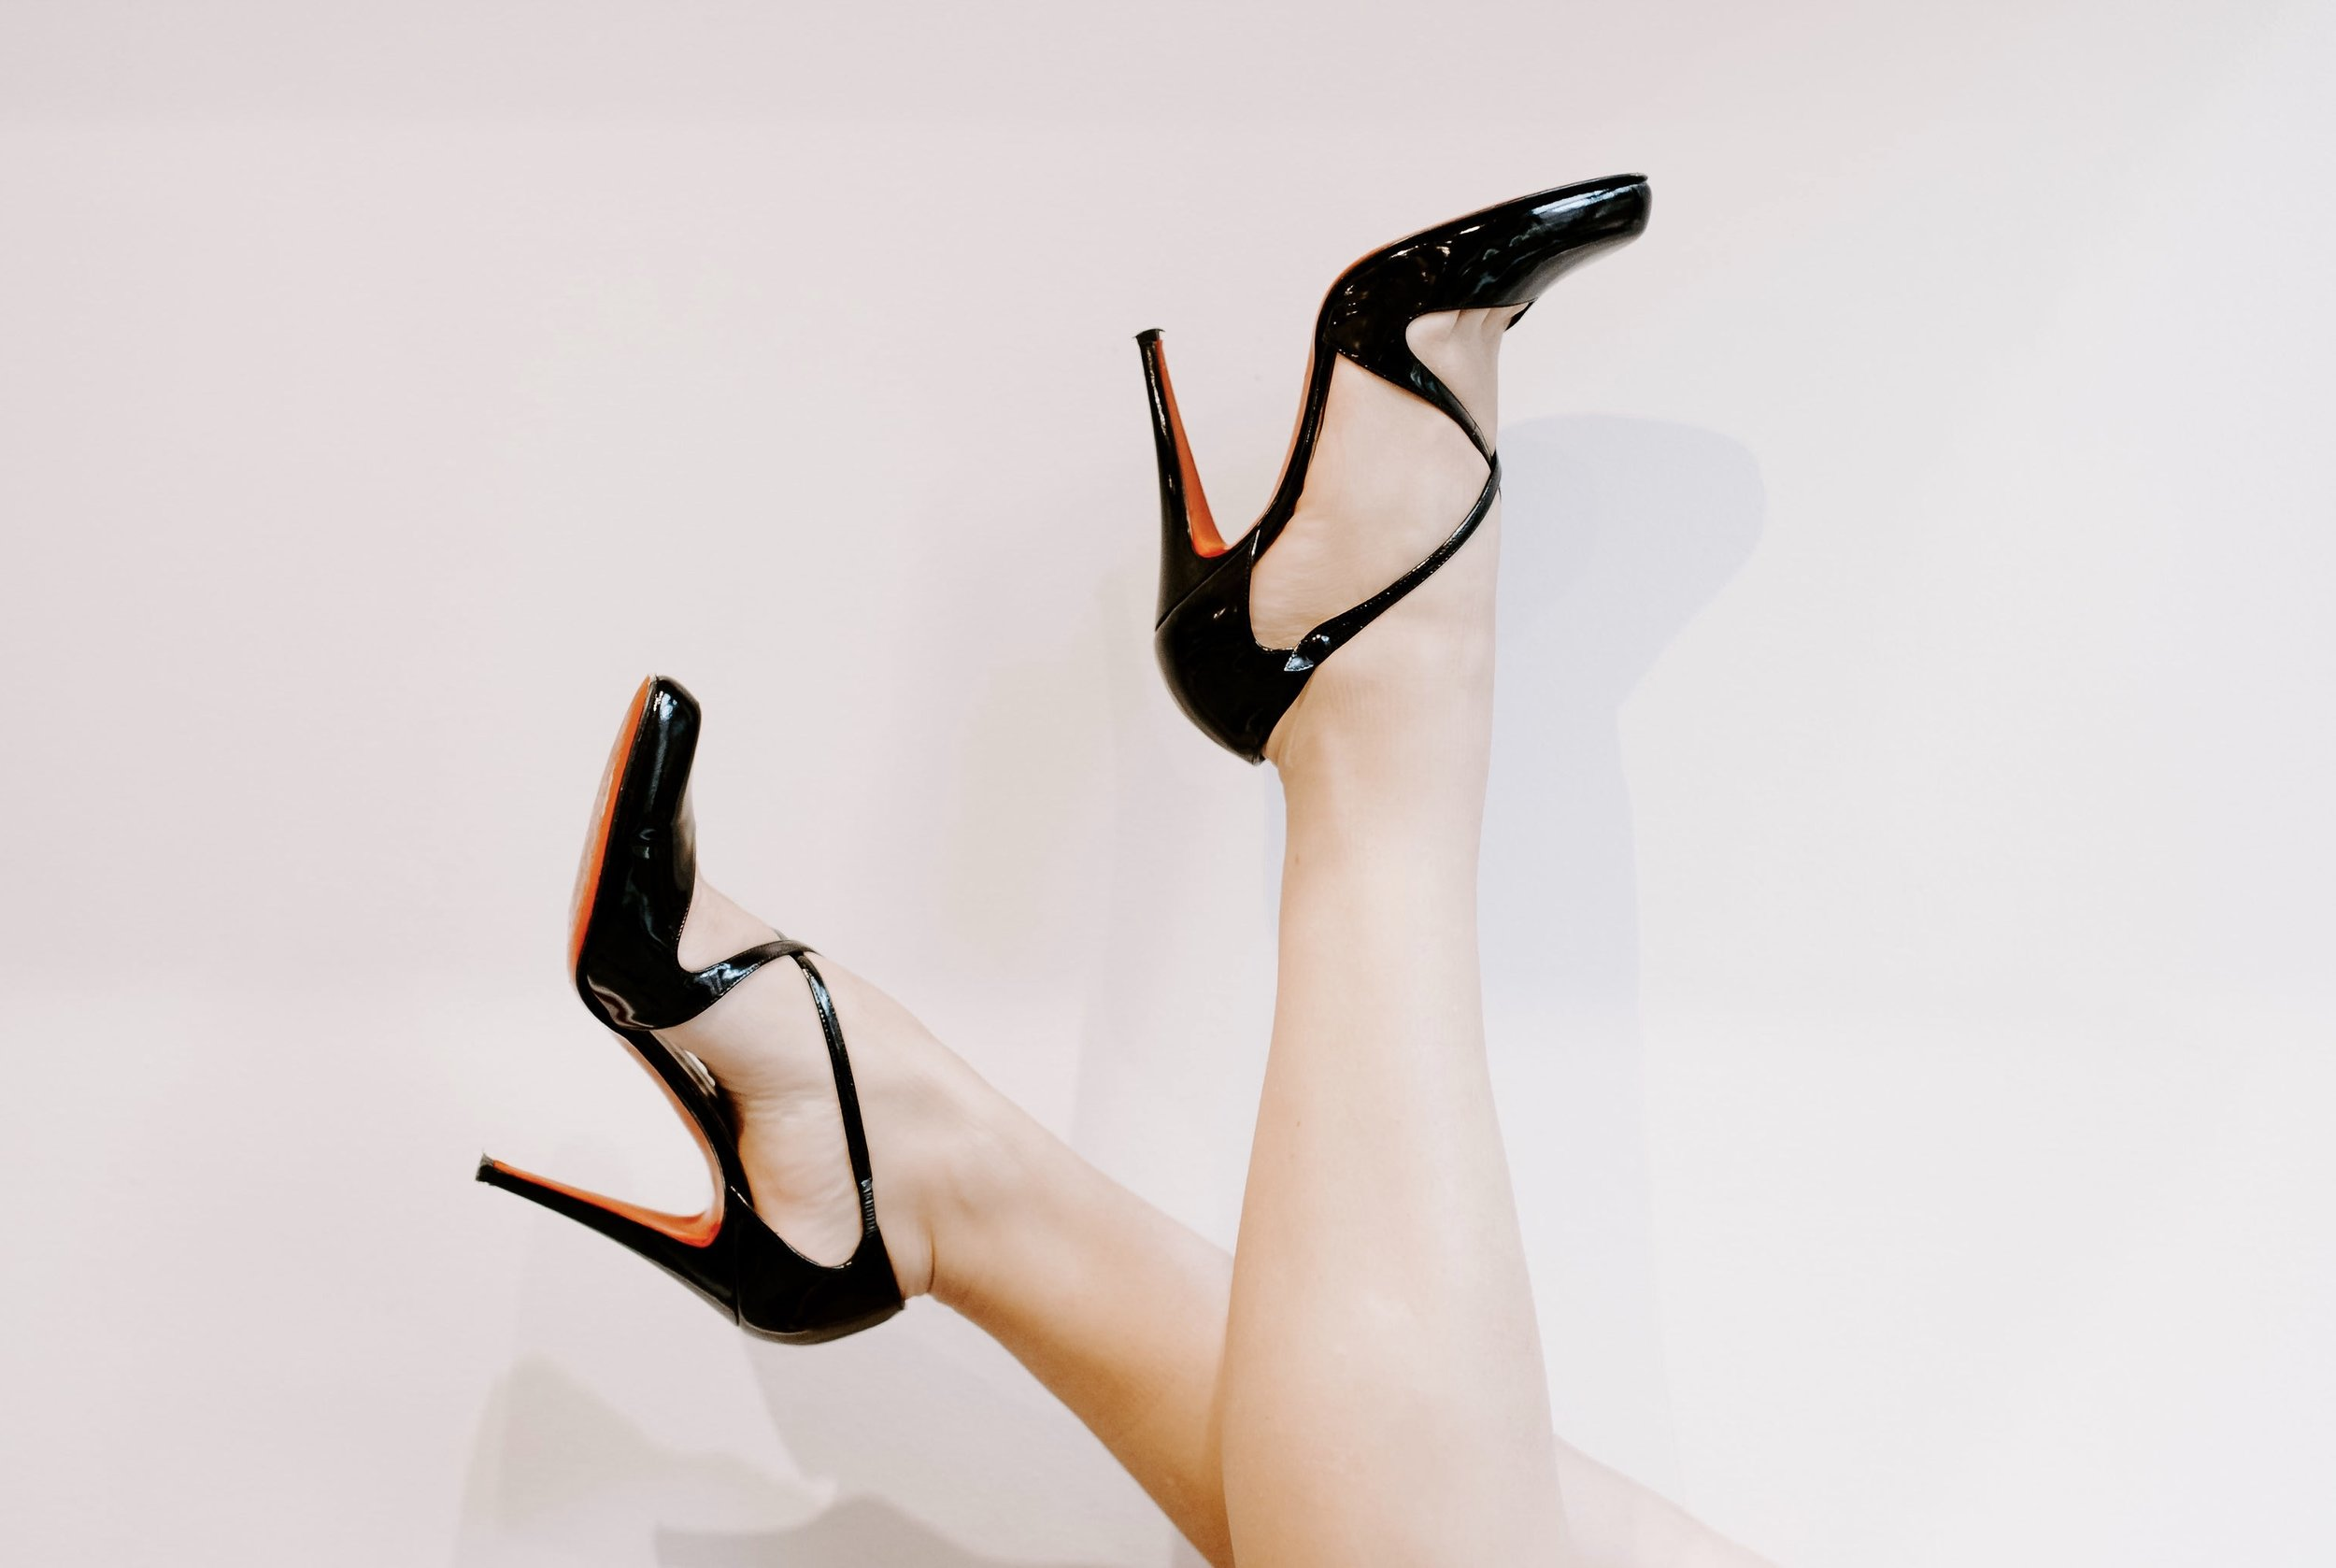 Red Bottoms | Photography by Tiffany Sun for Darling Boutique